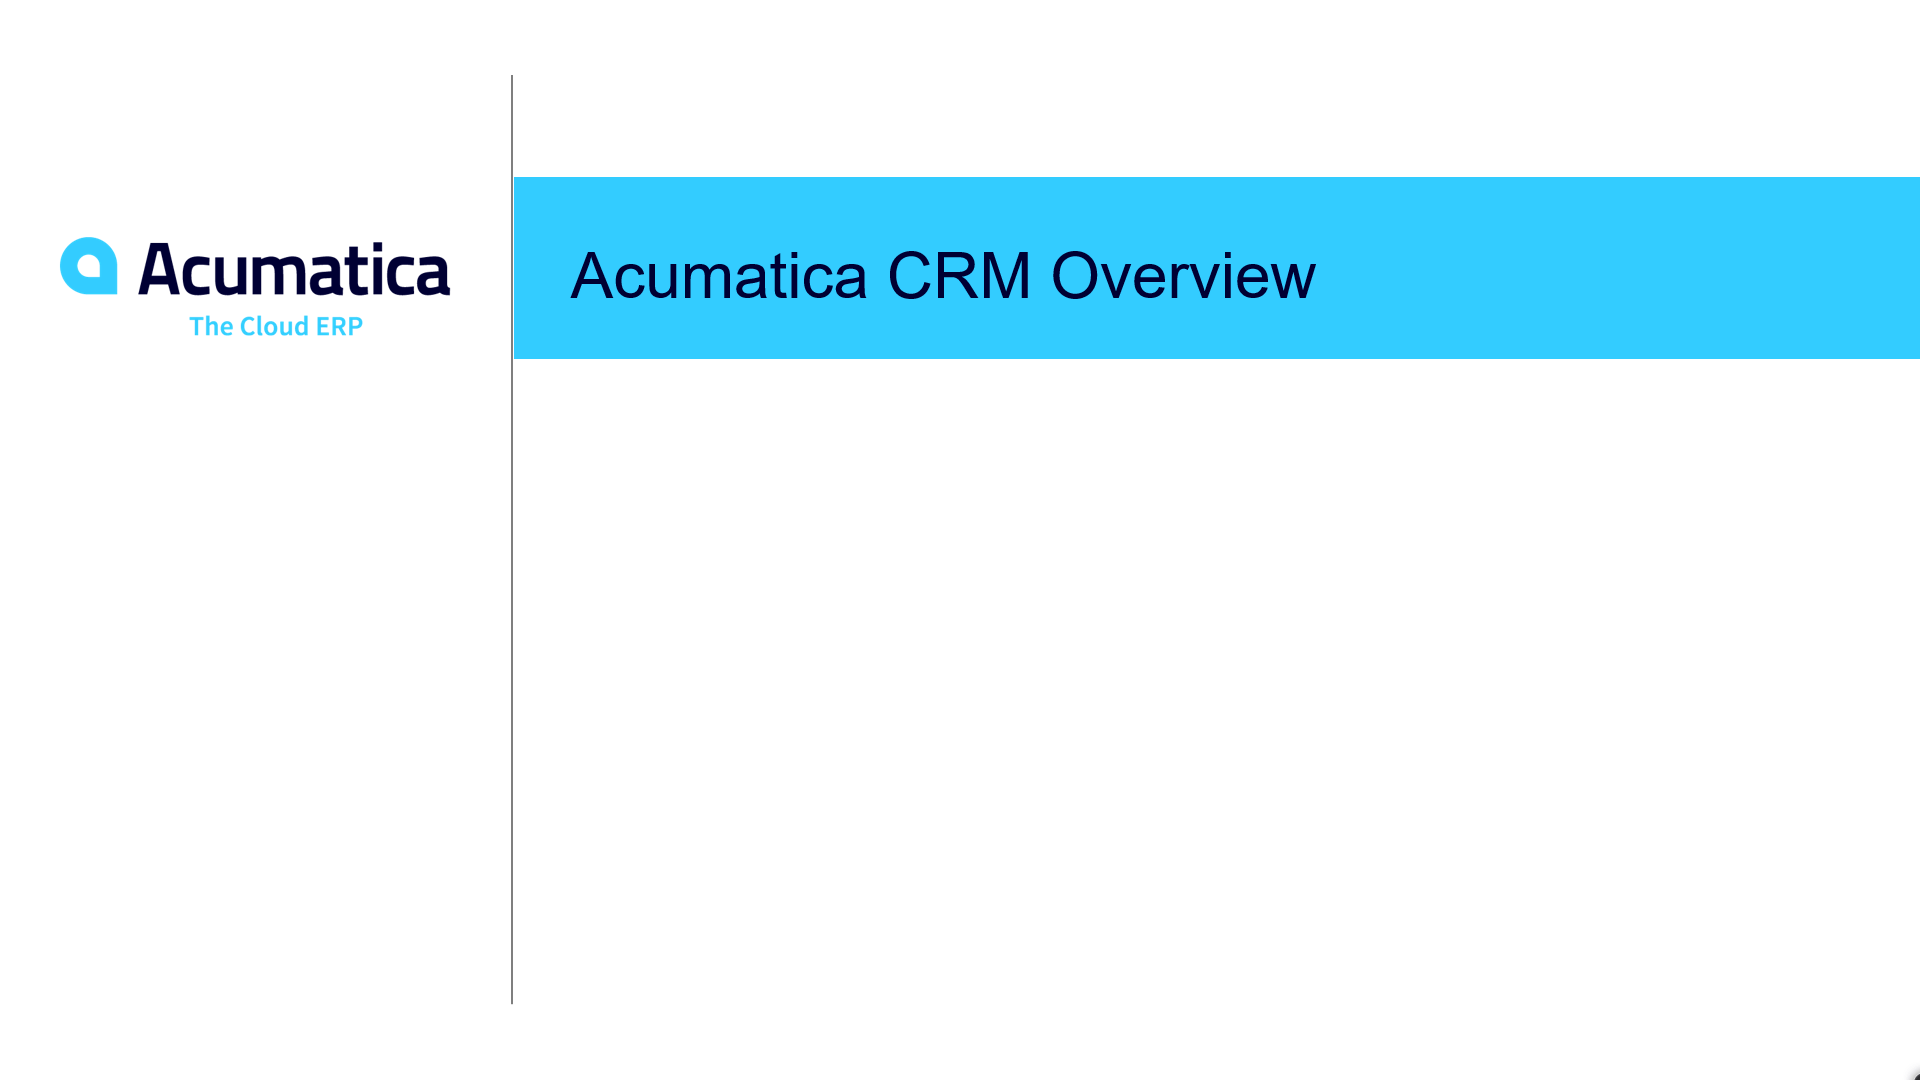 Acumatica CRM Overview